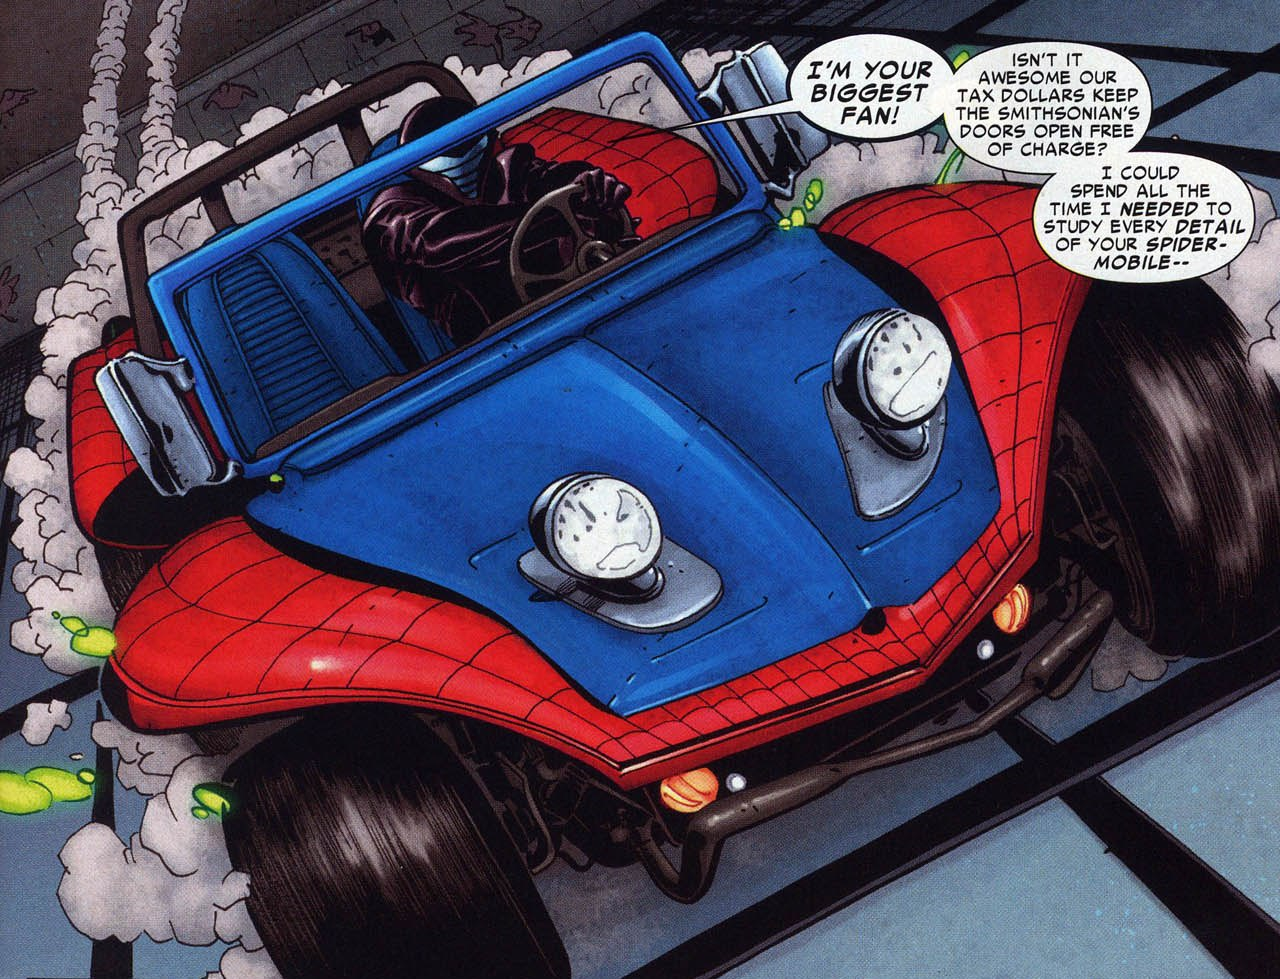 Spider-Mobile, Spiderman